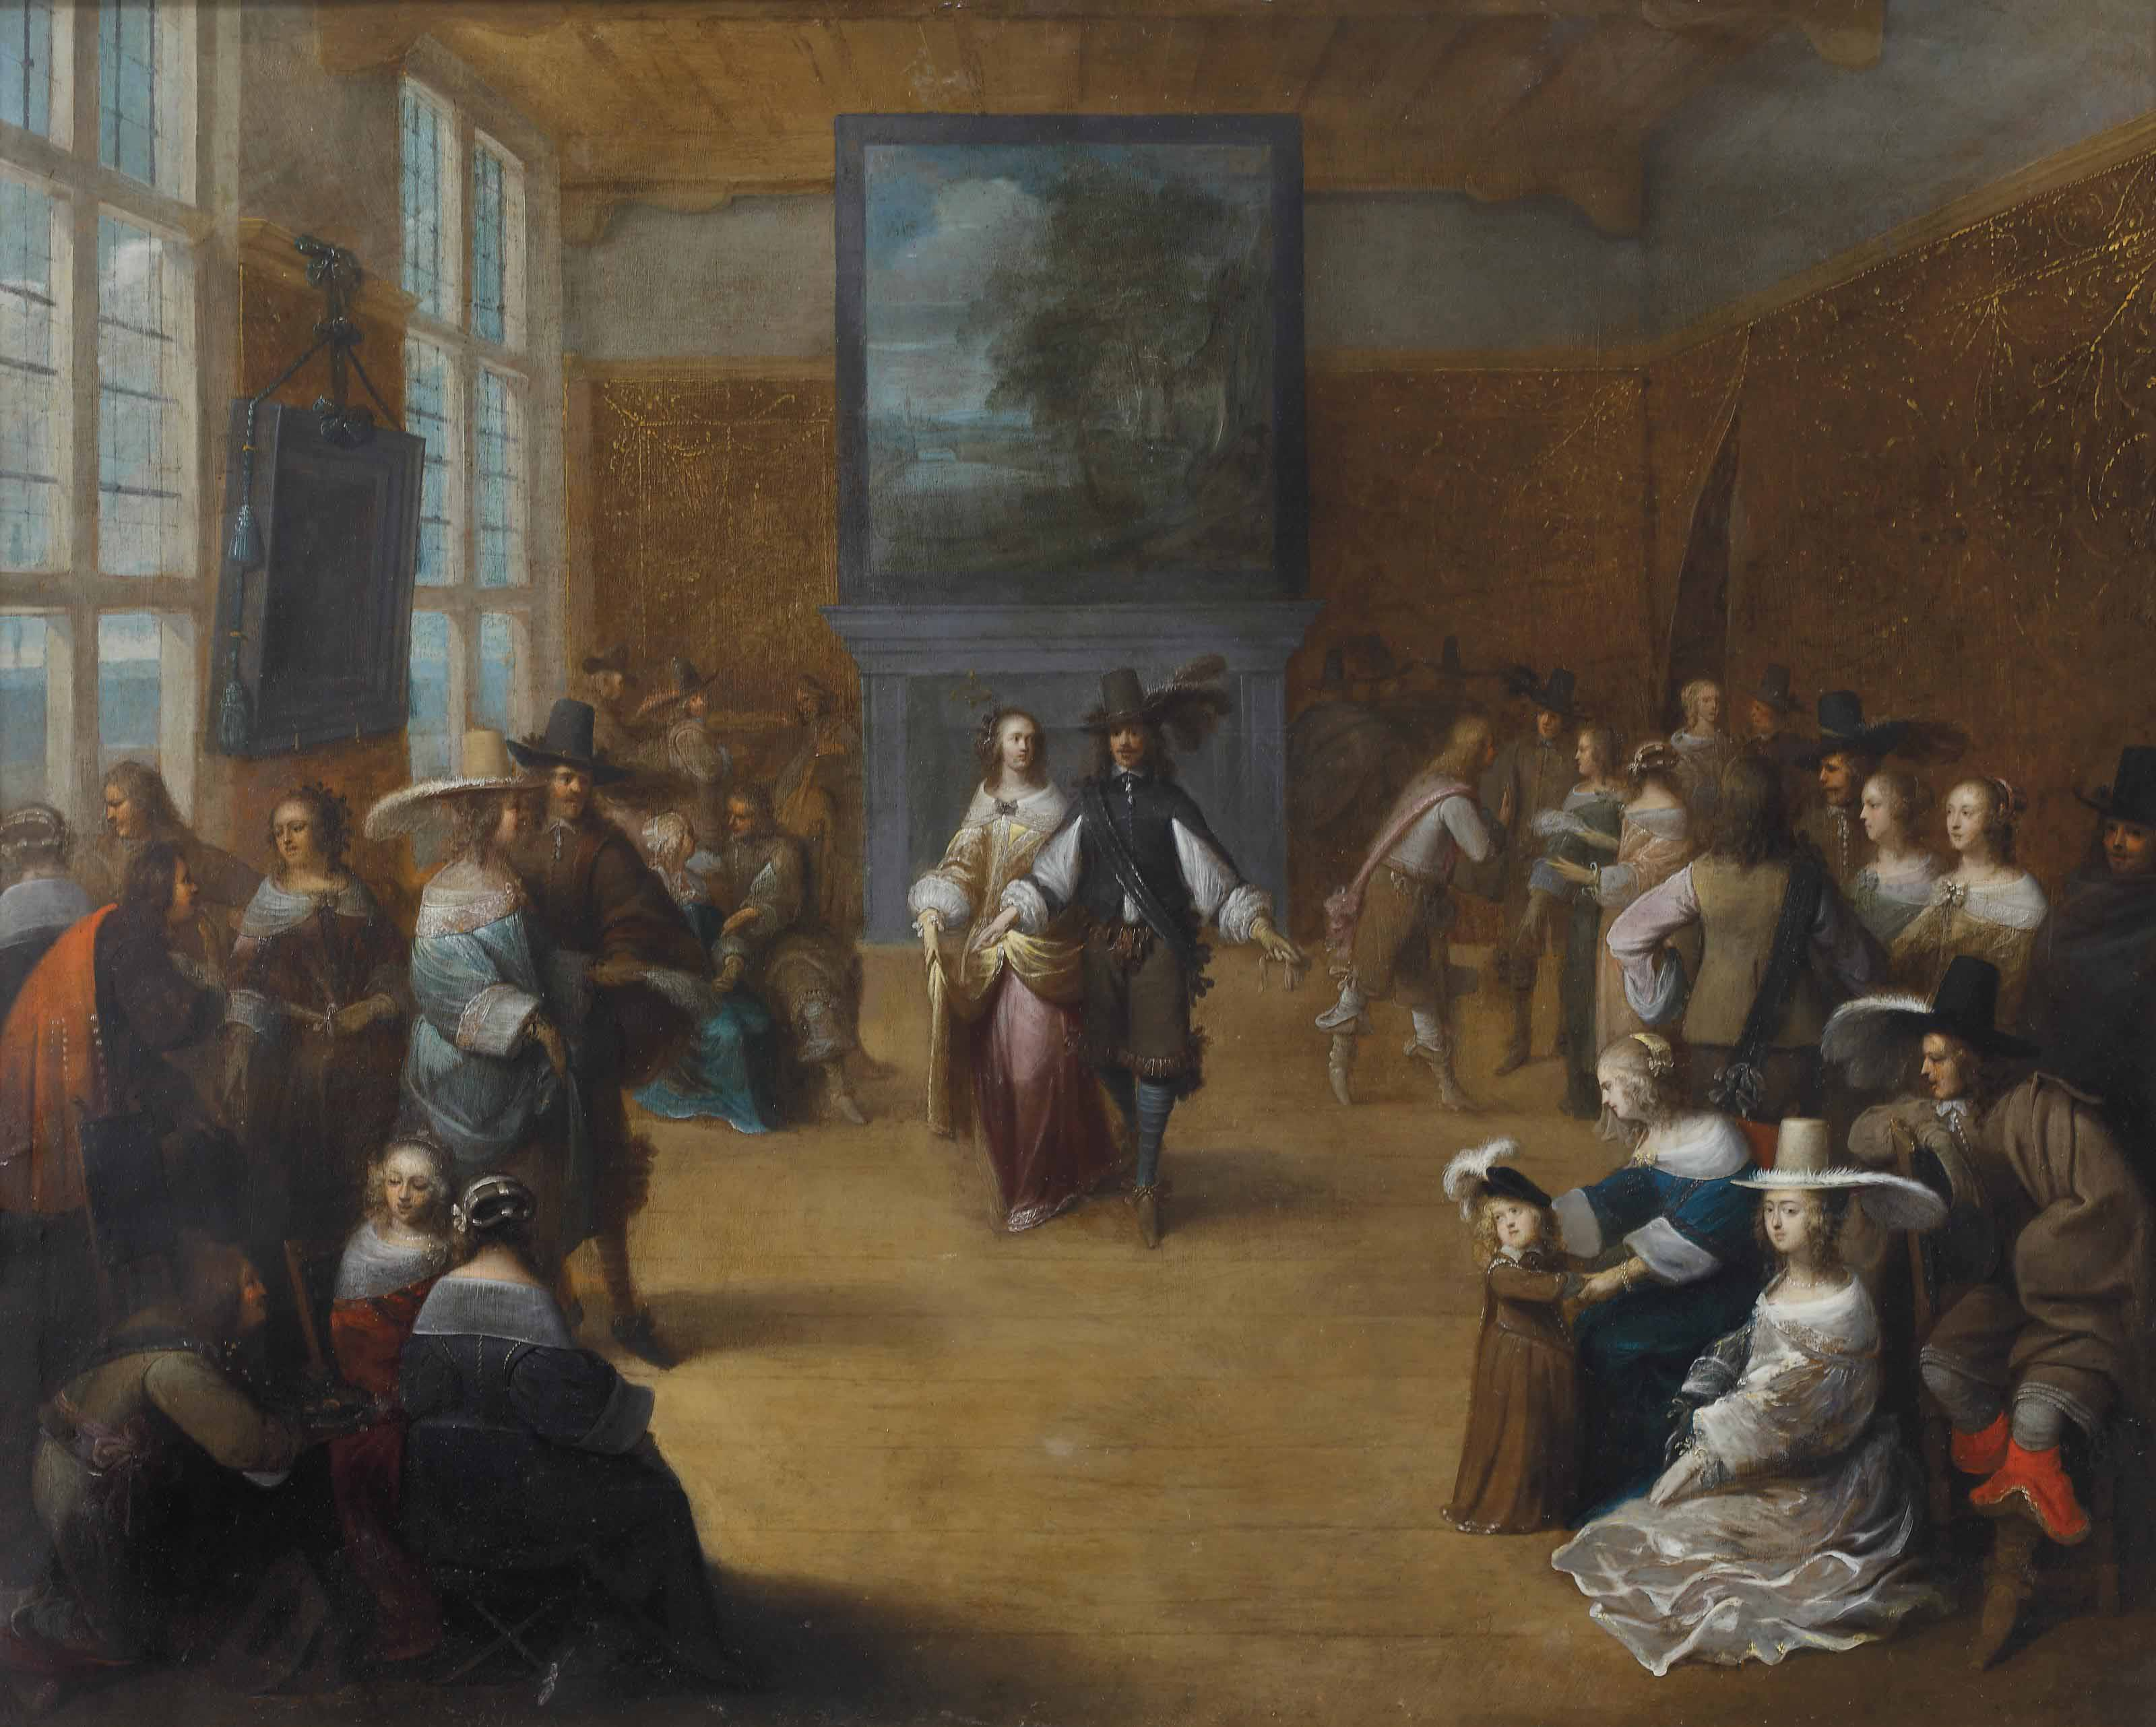 An elegant party in a palace interior with figures conversing and dancing